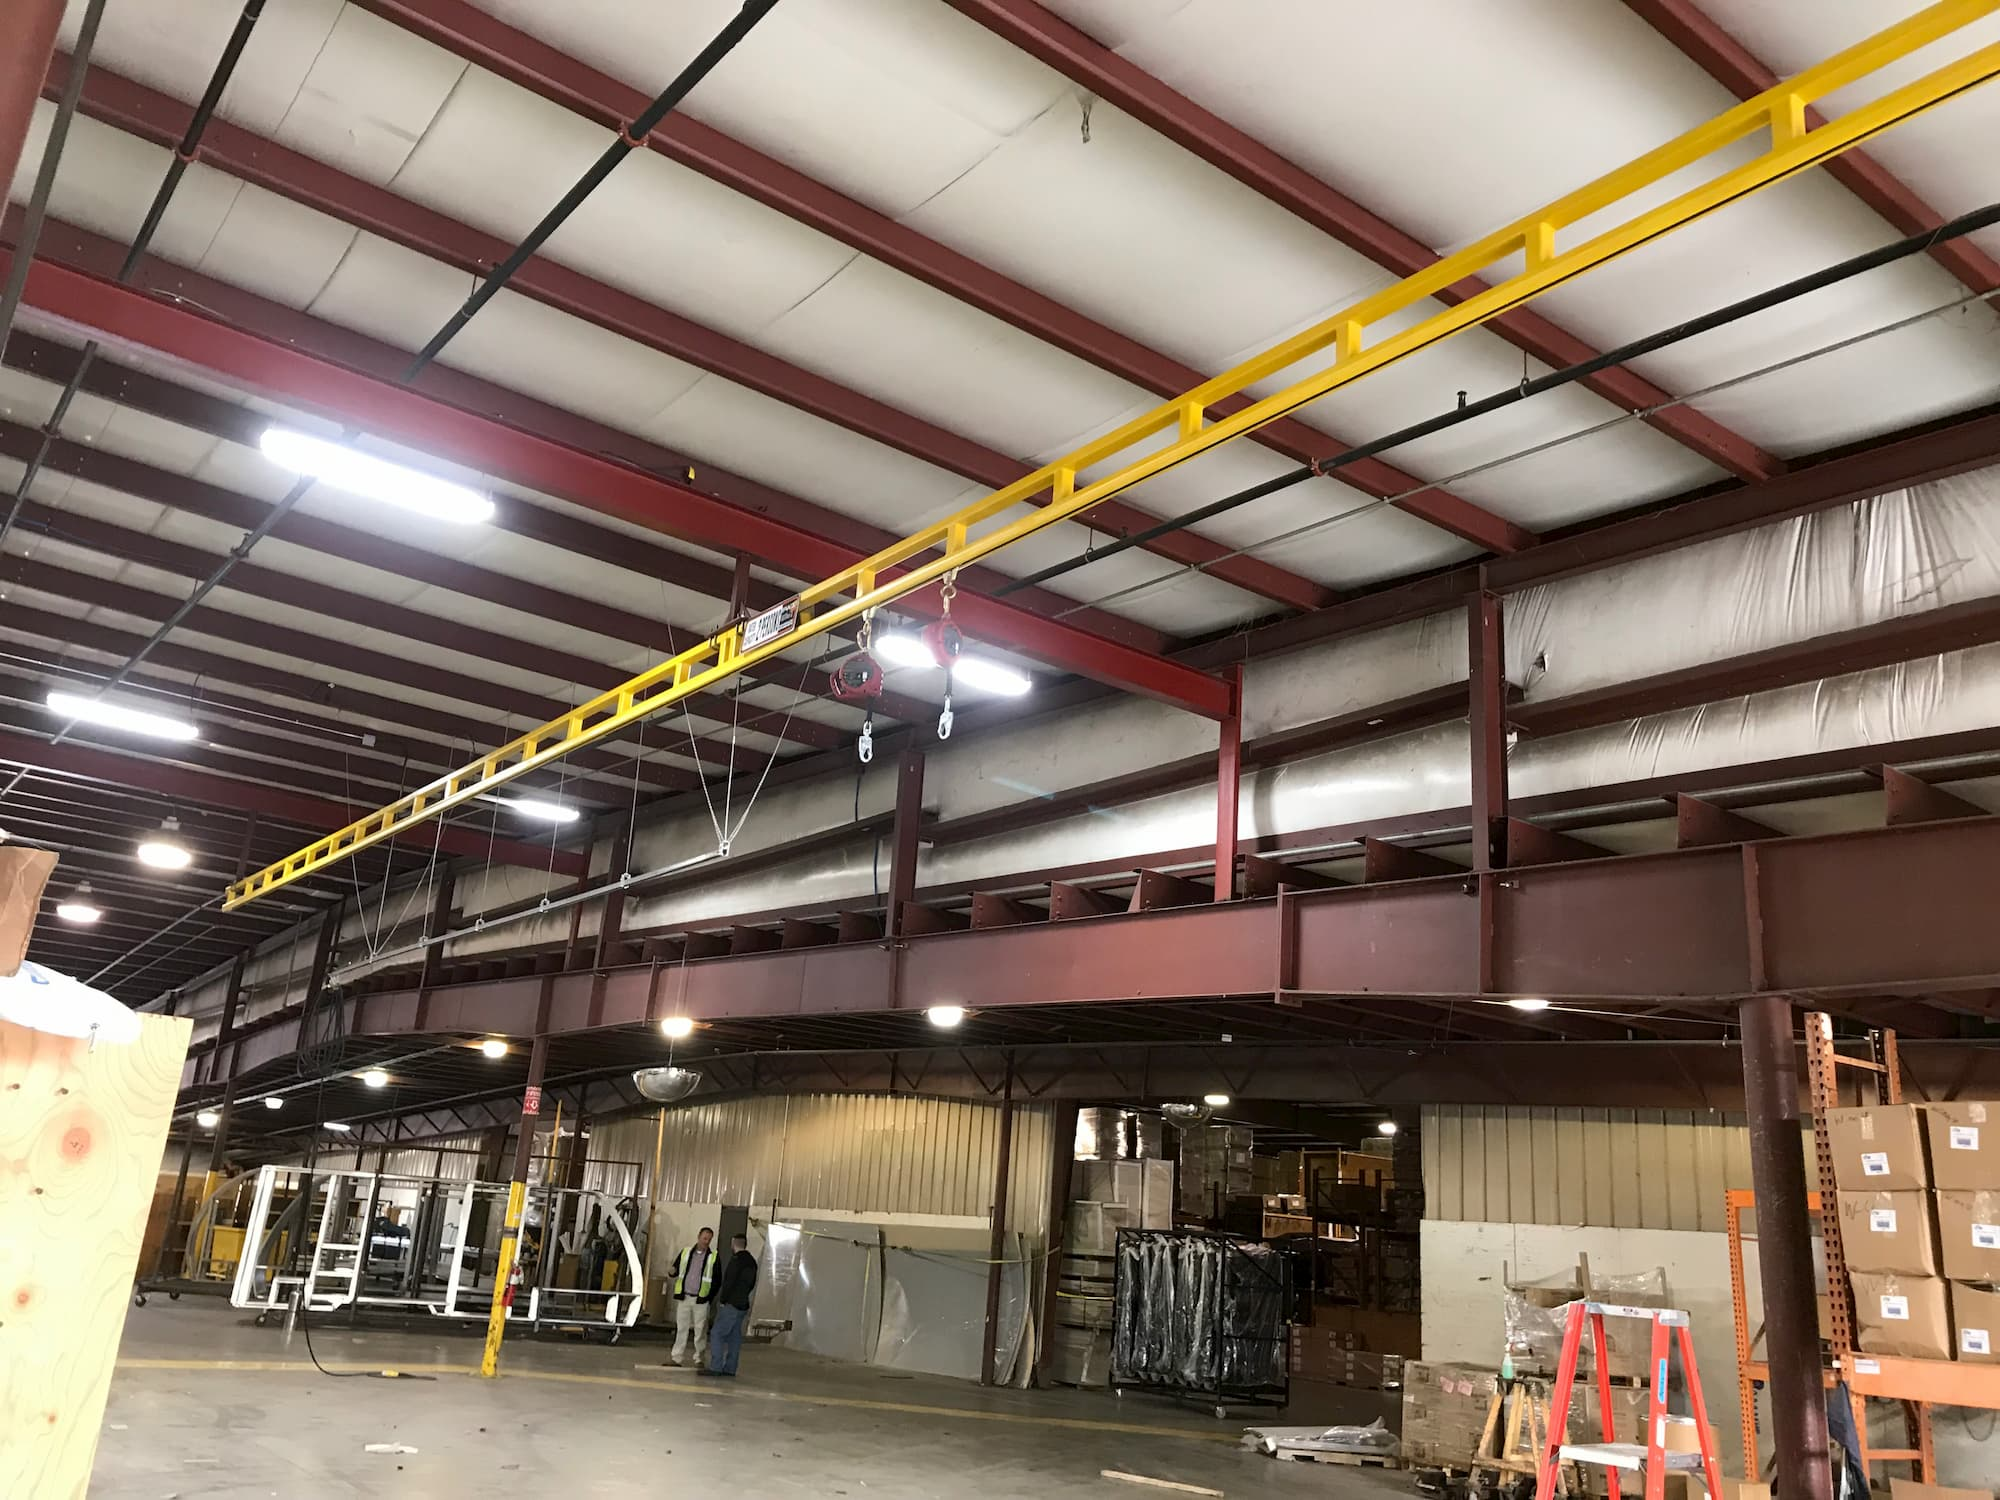 Fall Protection System for Assembly Line